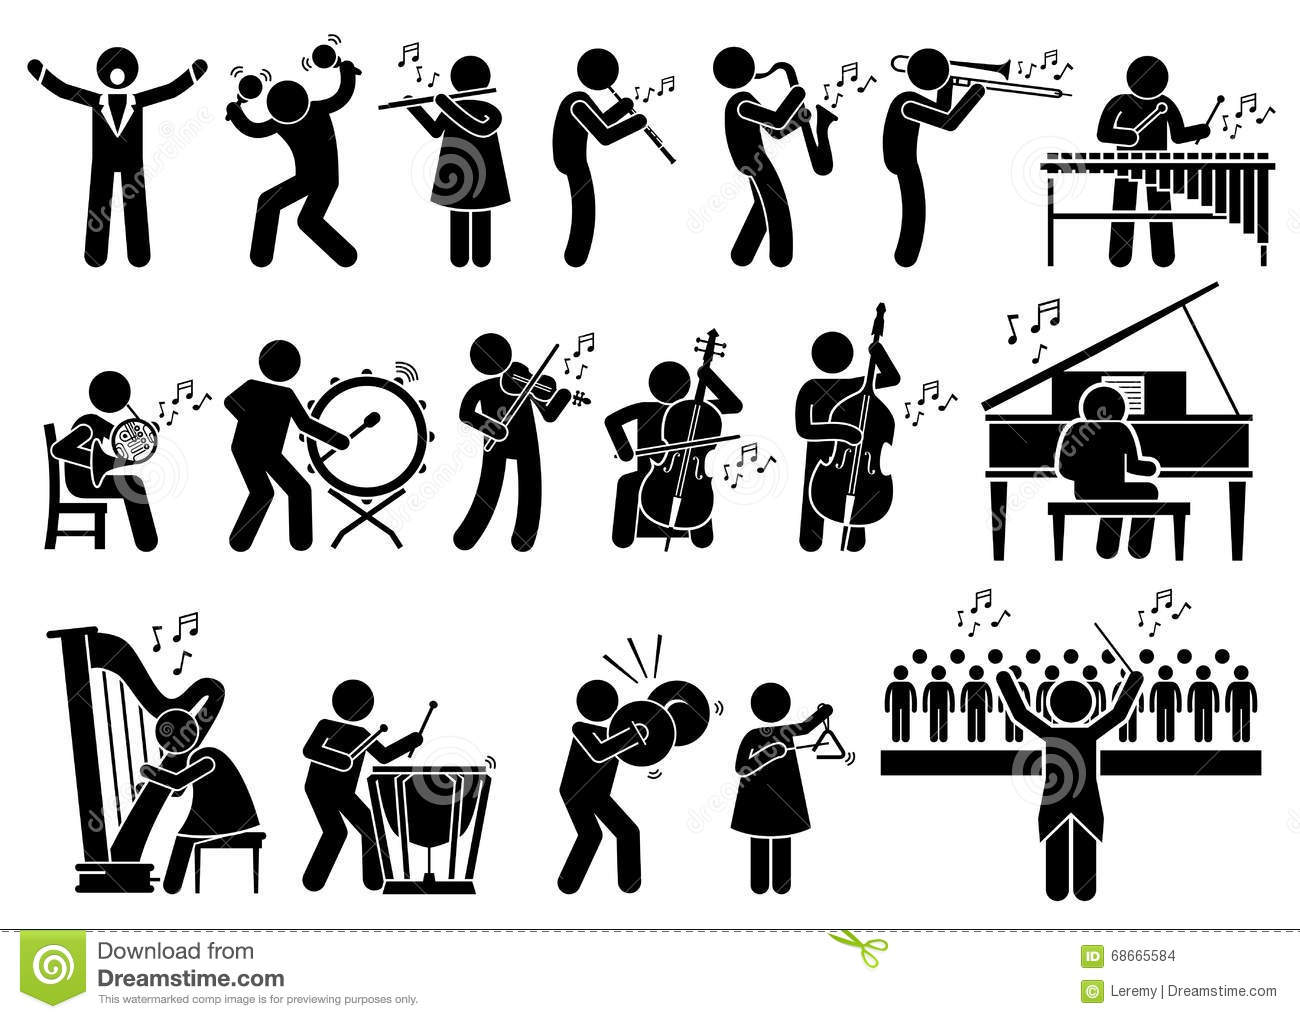 ... , conductor, harp, oboe, xylophone, viola, double bass, French horn